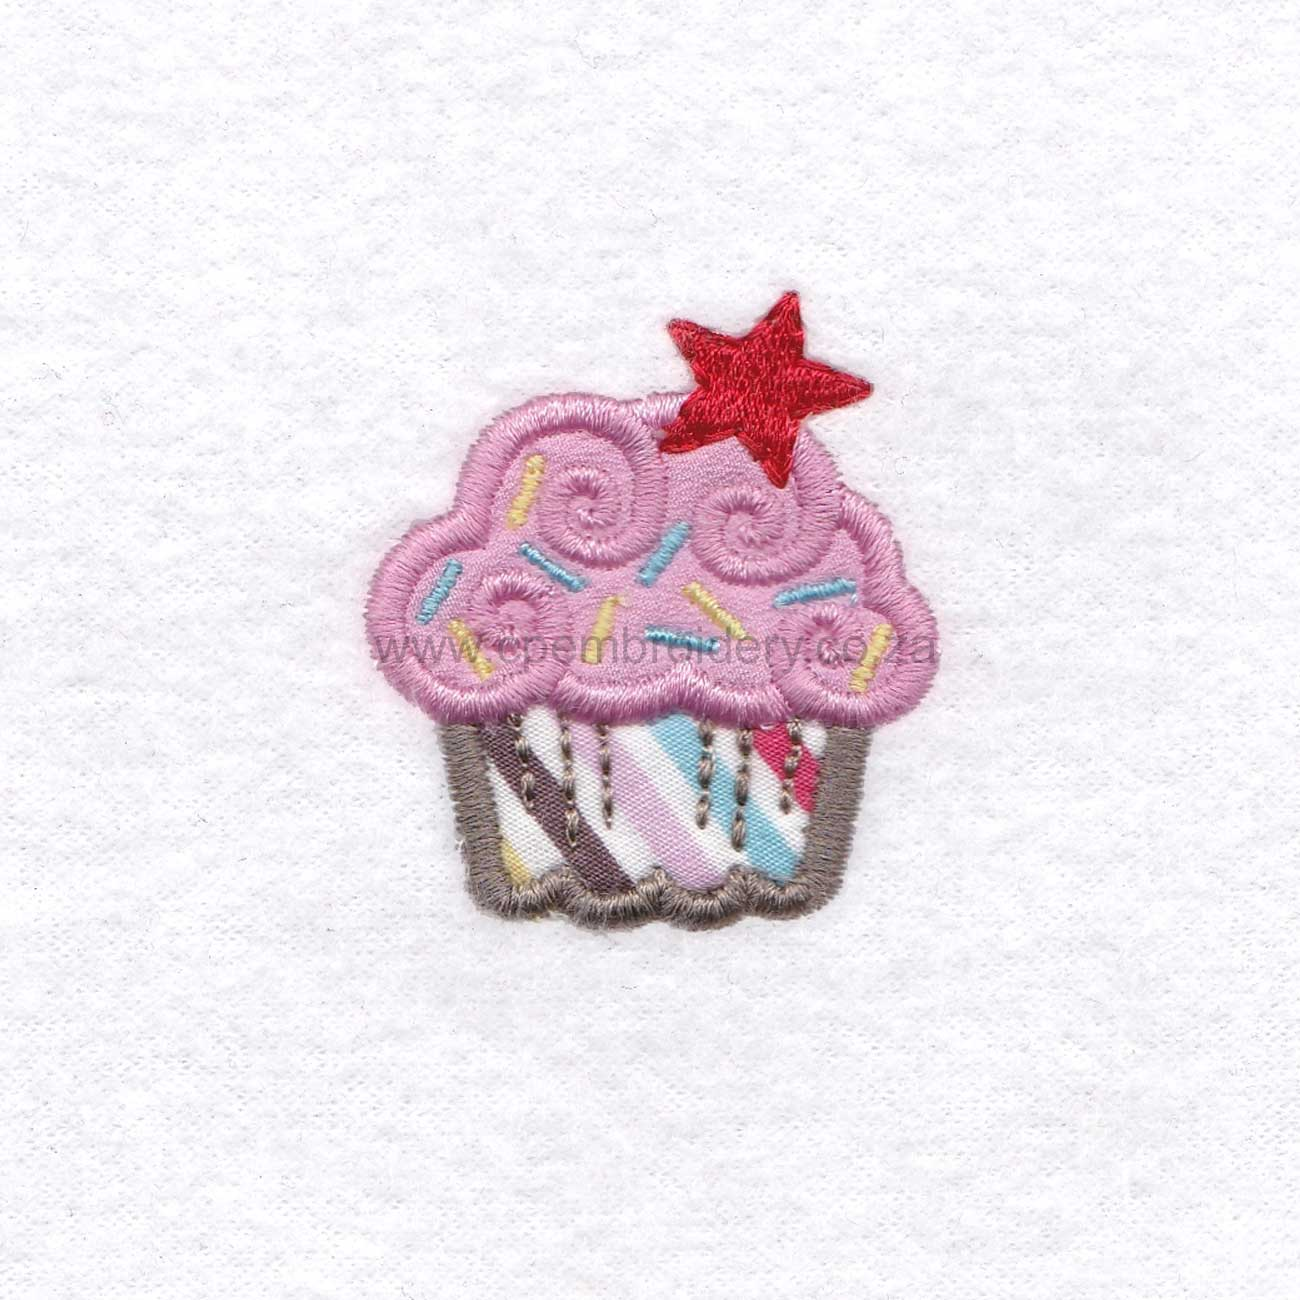 small pink cupcake cookie sprikles red star decorated applique embroidery design